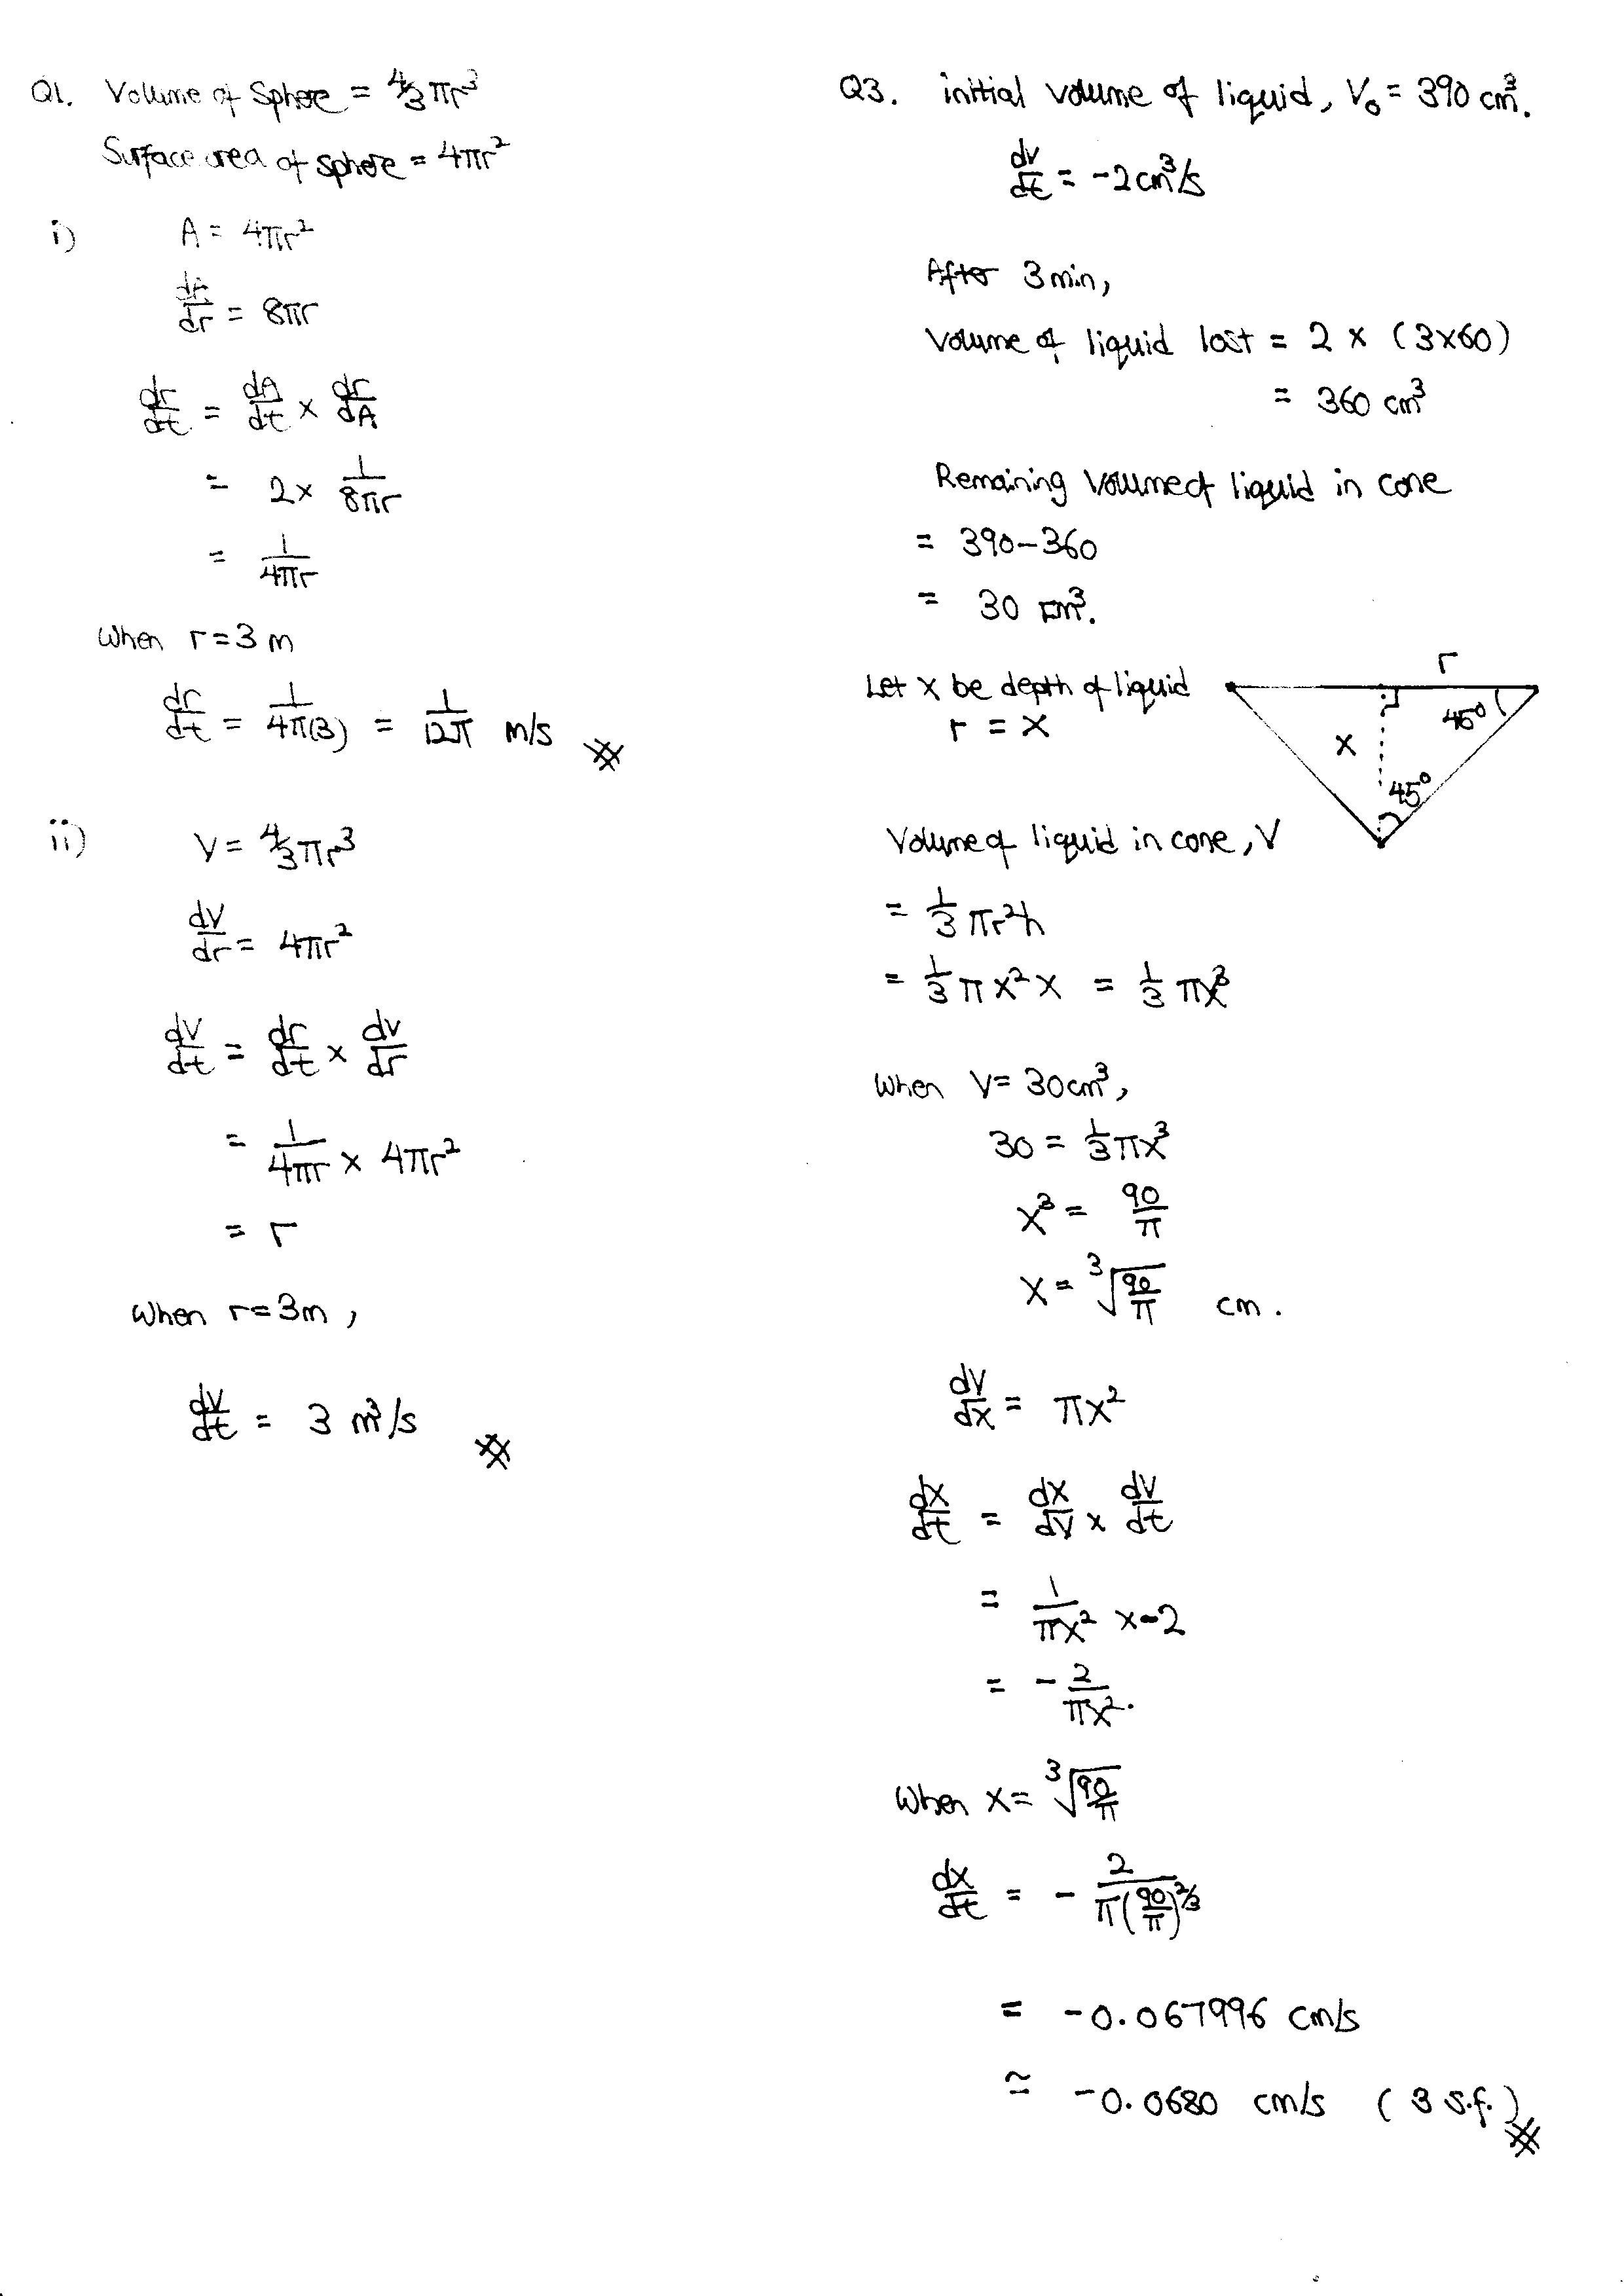 H2 Math Tuition June intensive revision topic, Application of Differentiation: Connected Rates of change Q1 & 3 solution.